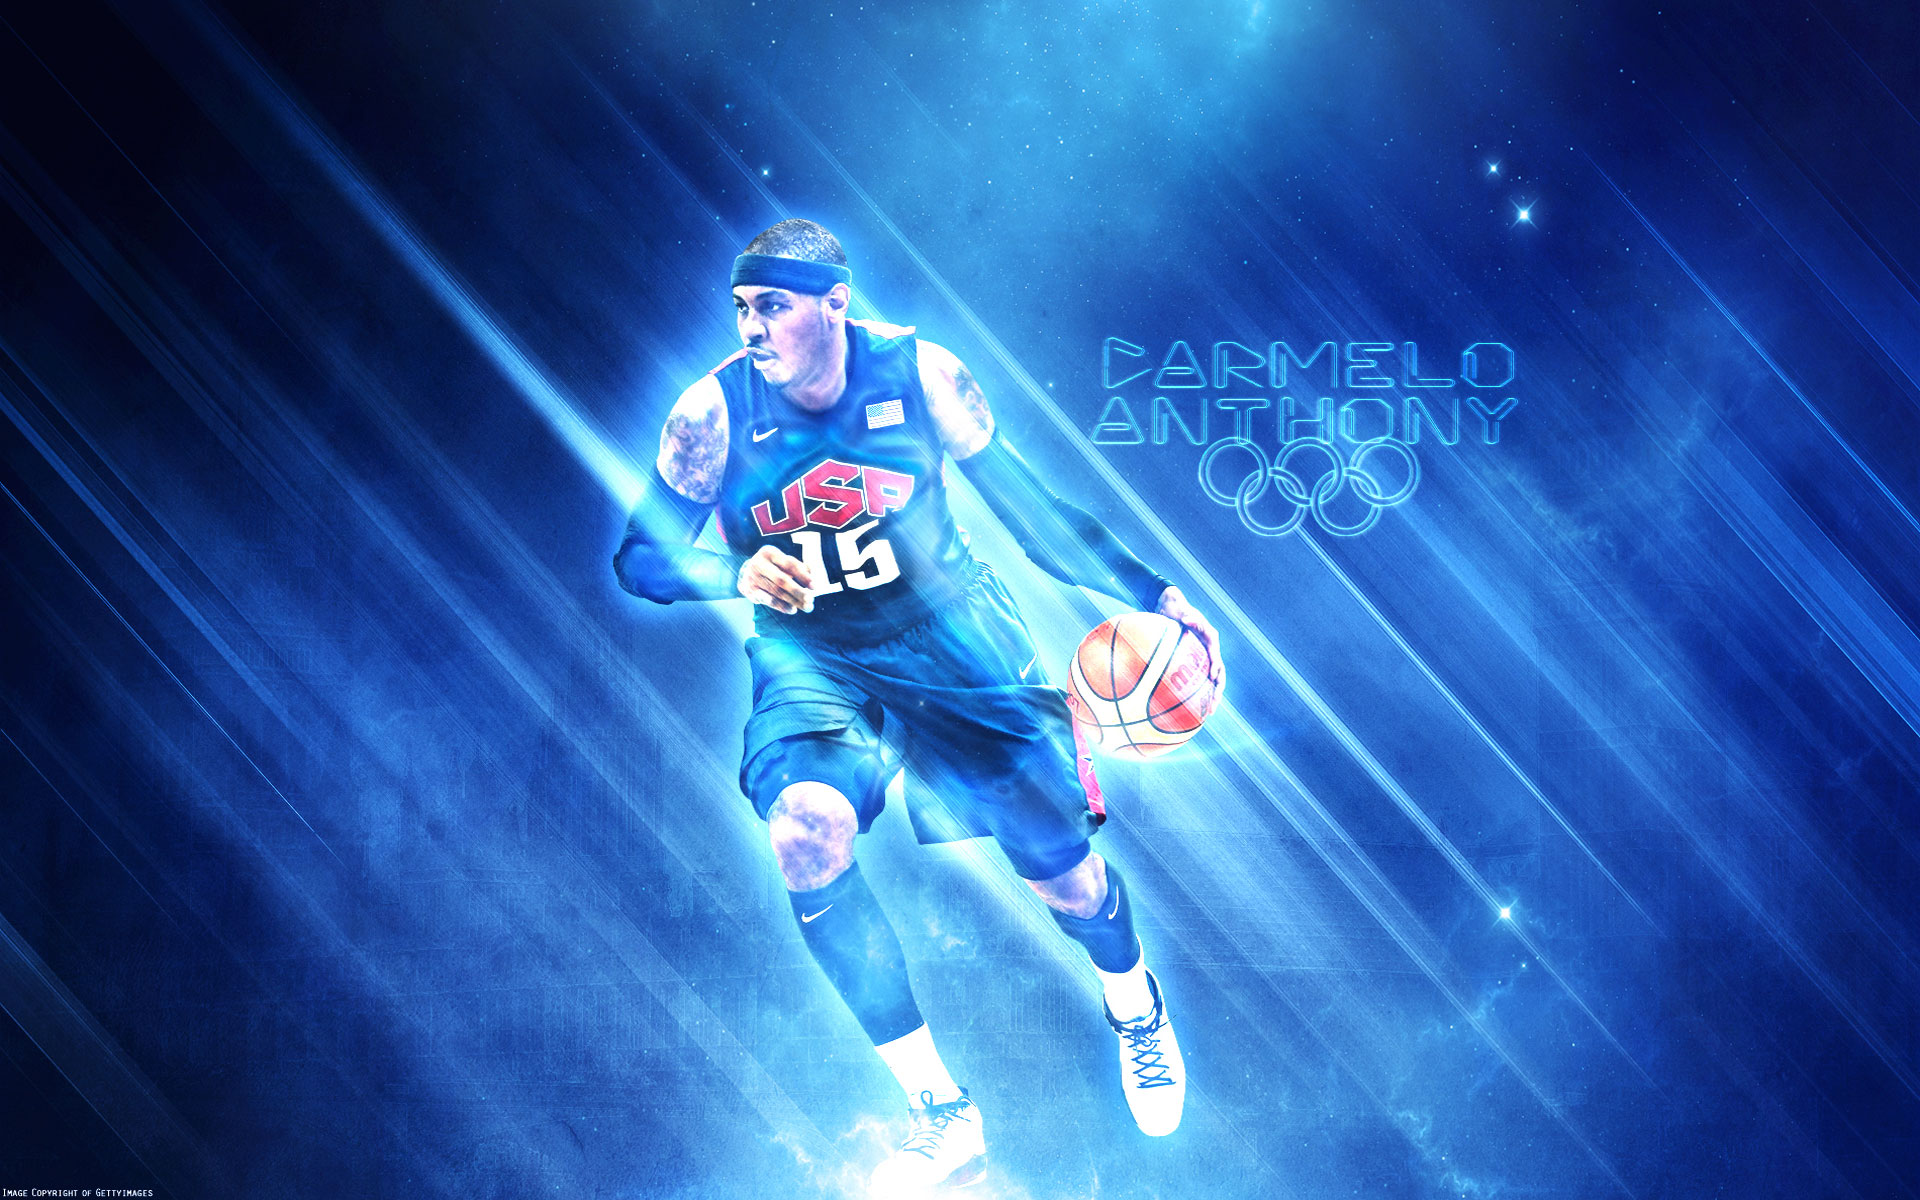 Carmelo anthony olympics20x1200 wallpaper basketwallpapers wallpaper voltagebd Images